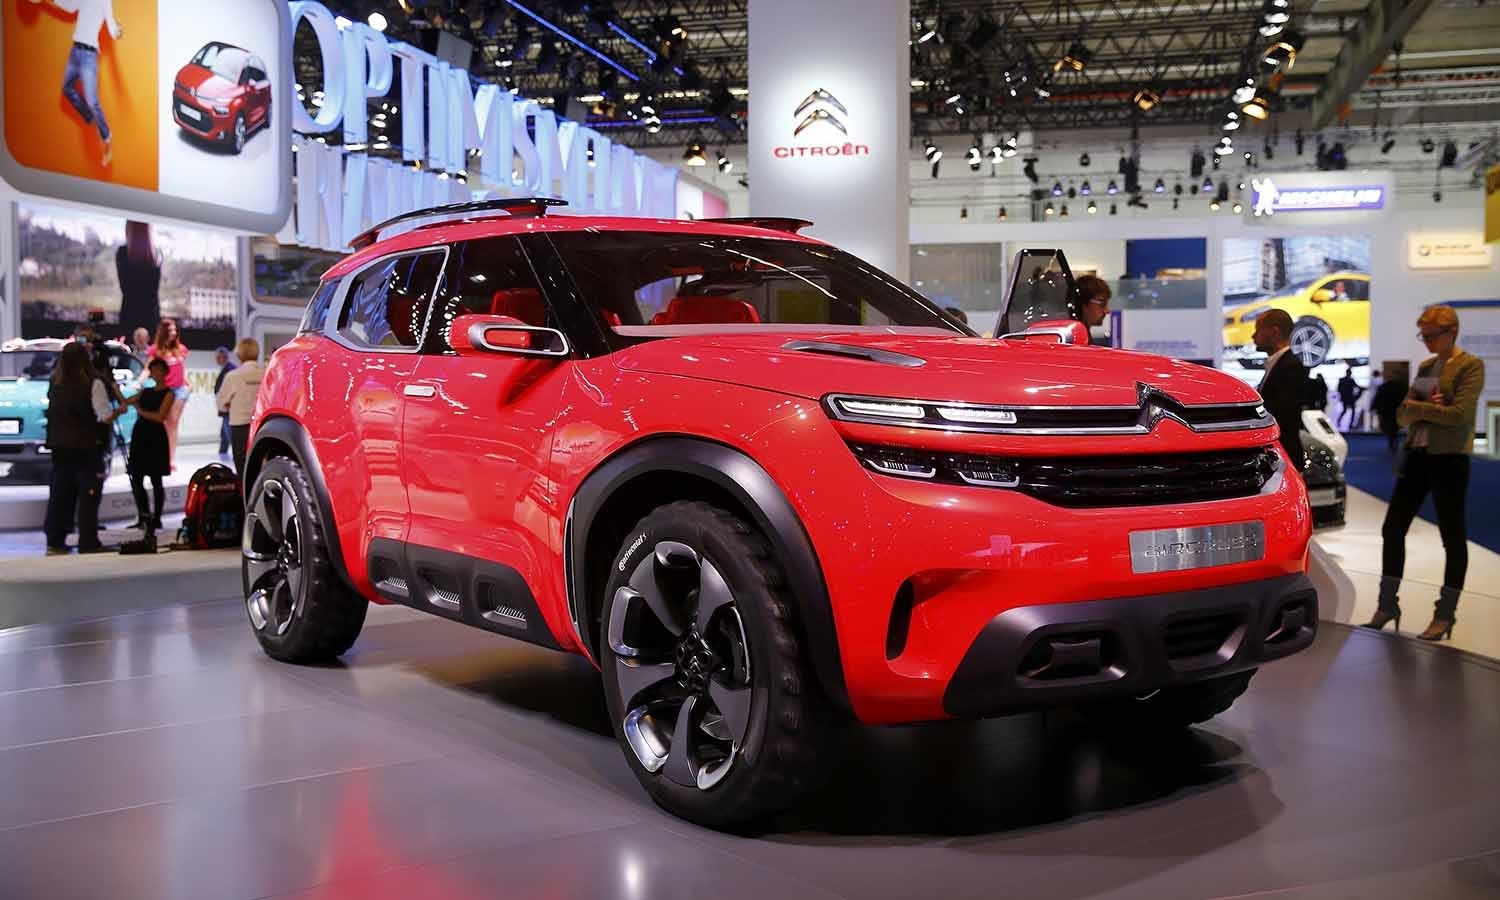 A Citroen Aircross concept car is pictured during the media day at the show. ─ Reuters